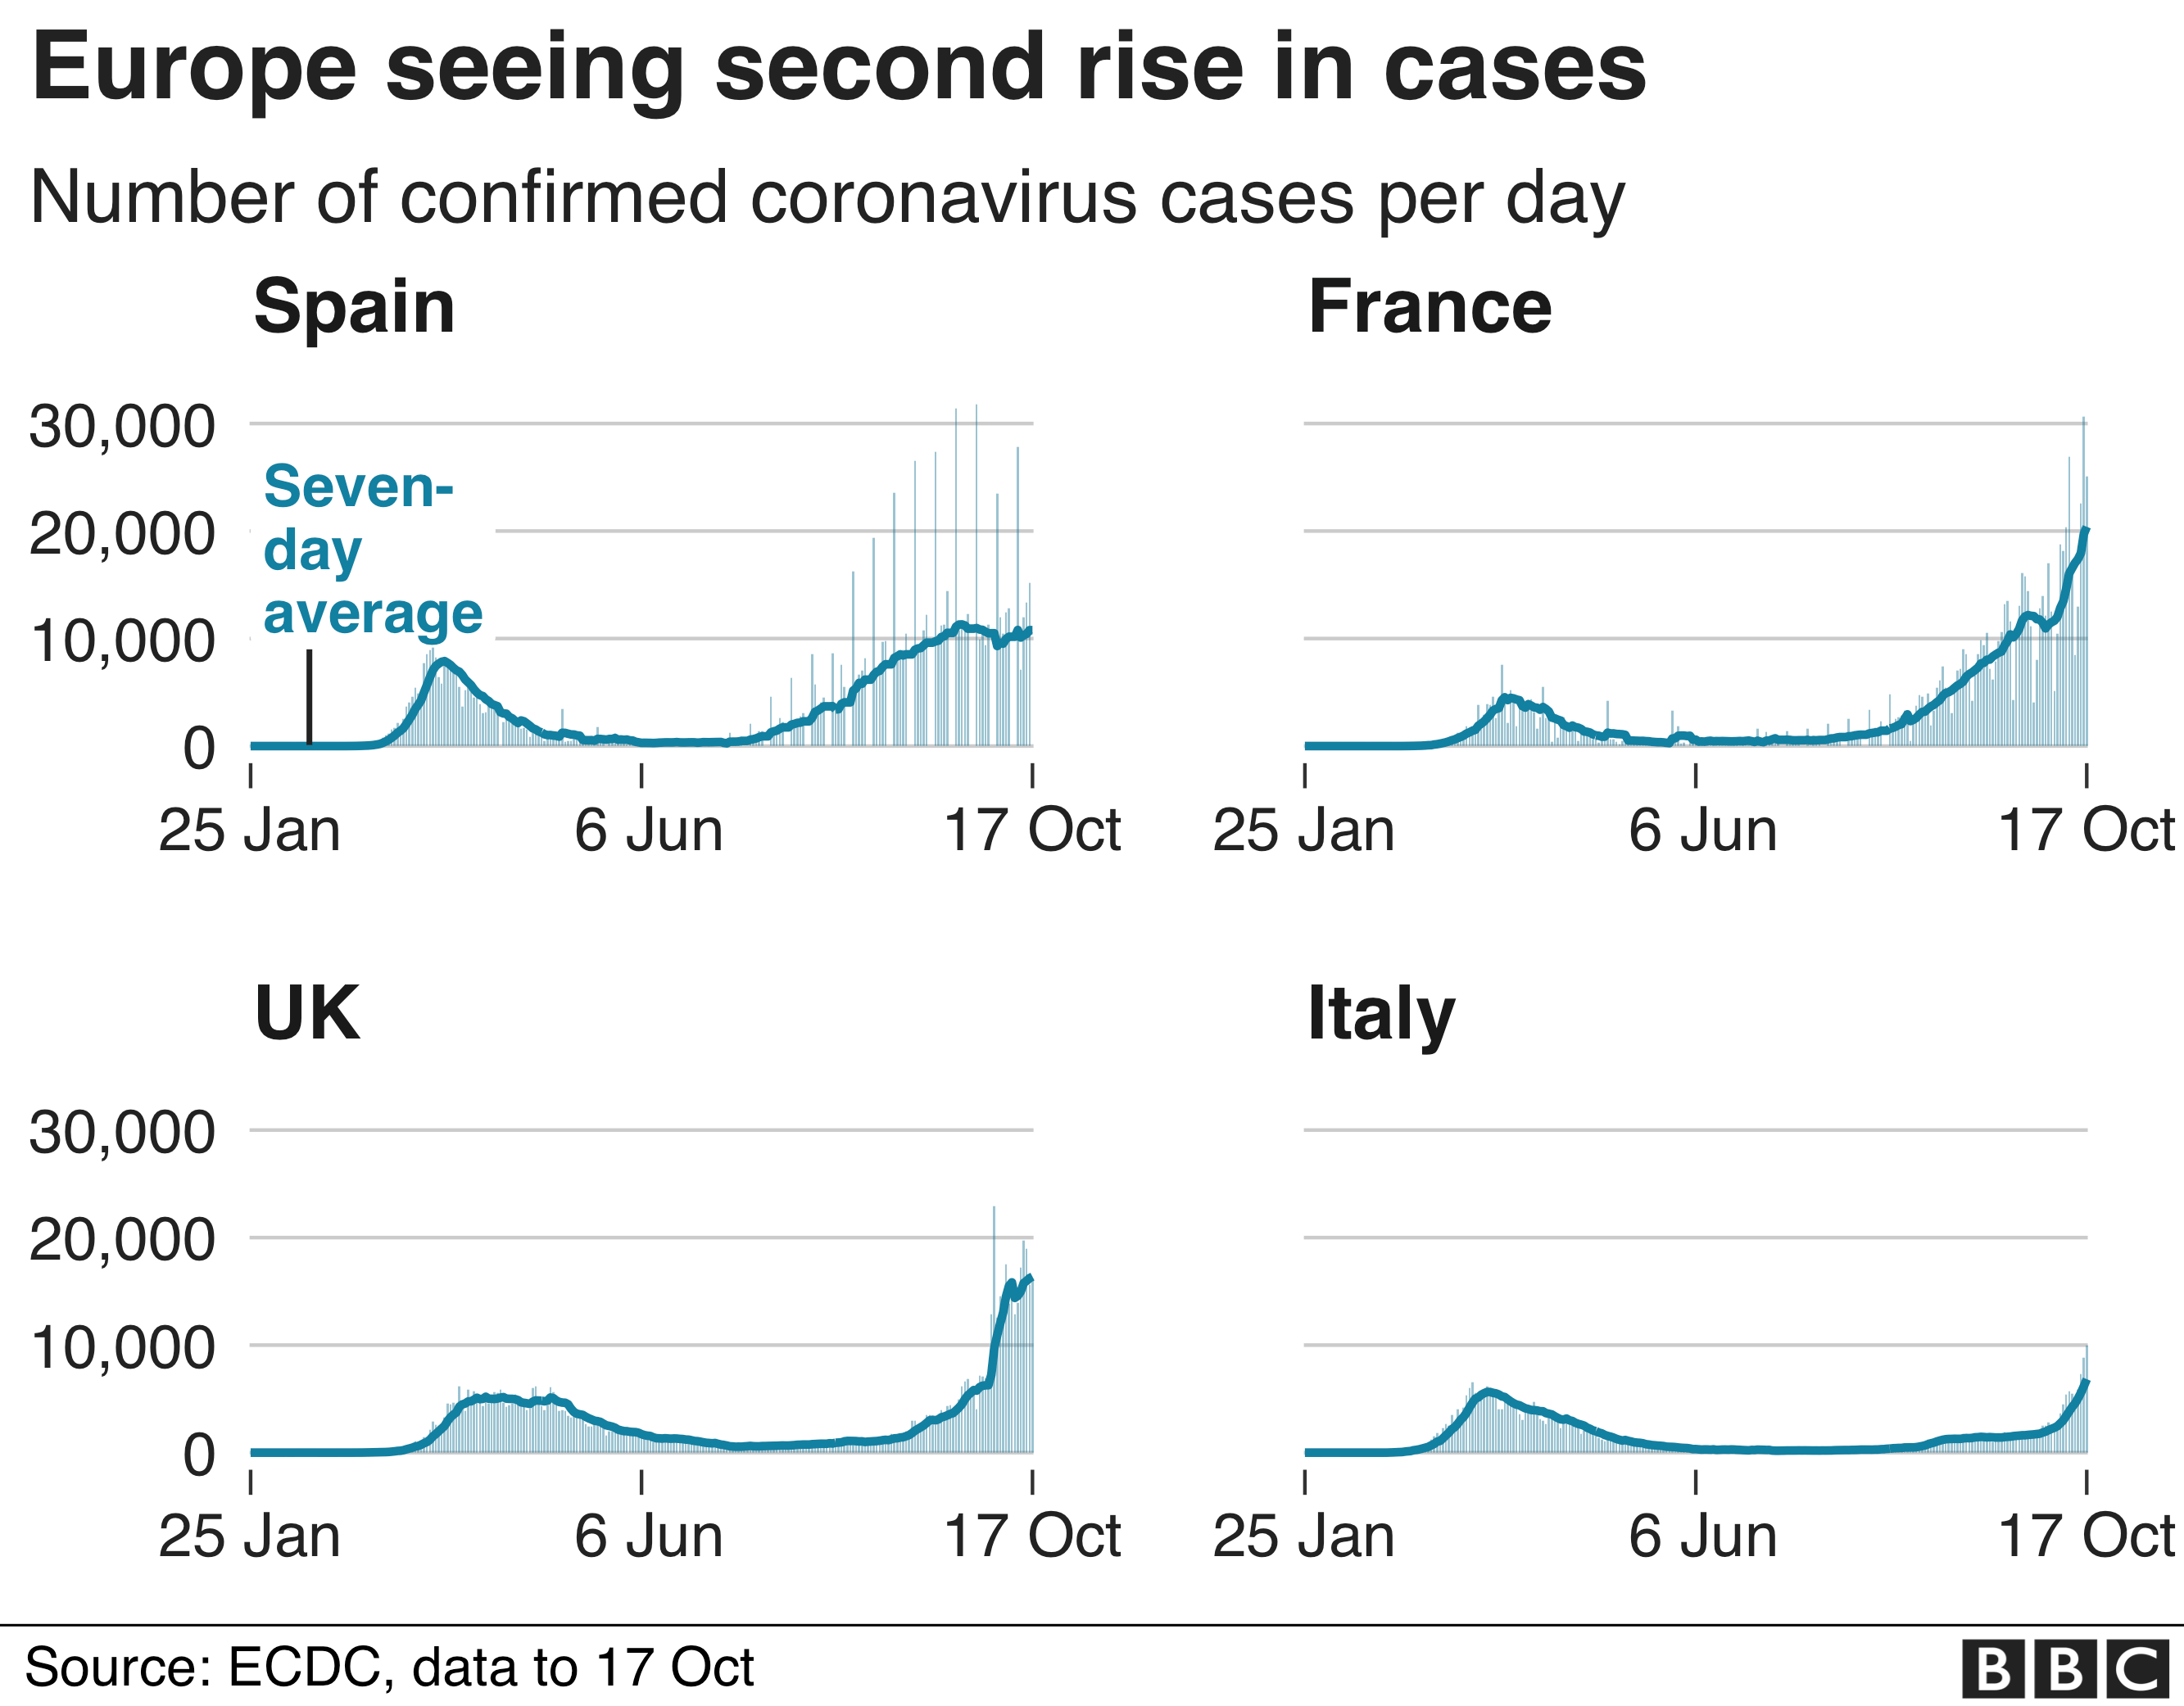 chart shows European countries seeing a second rise in cases, Spain, France, UK and Italy